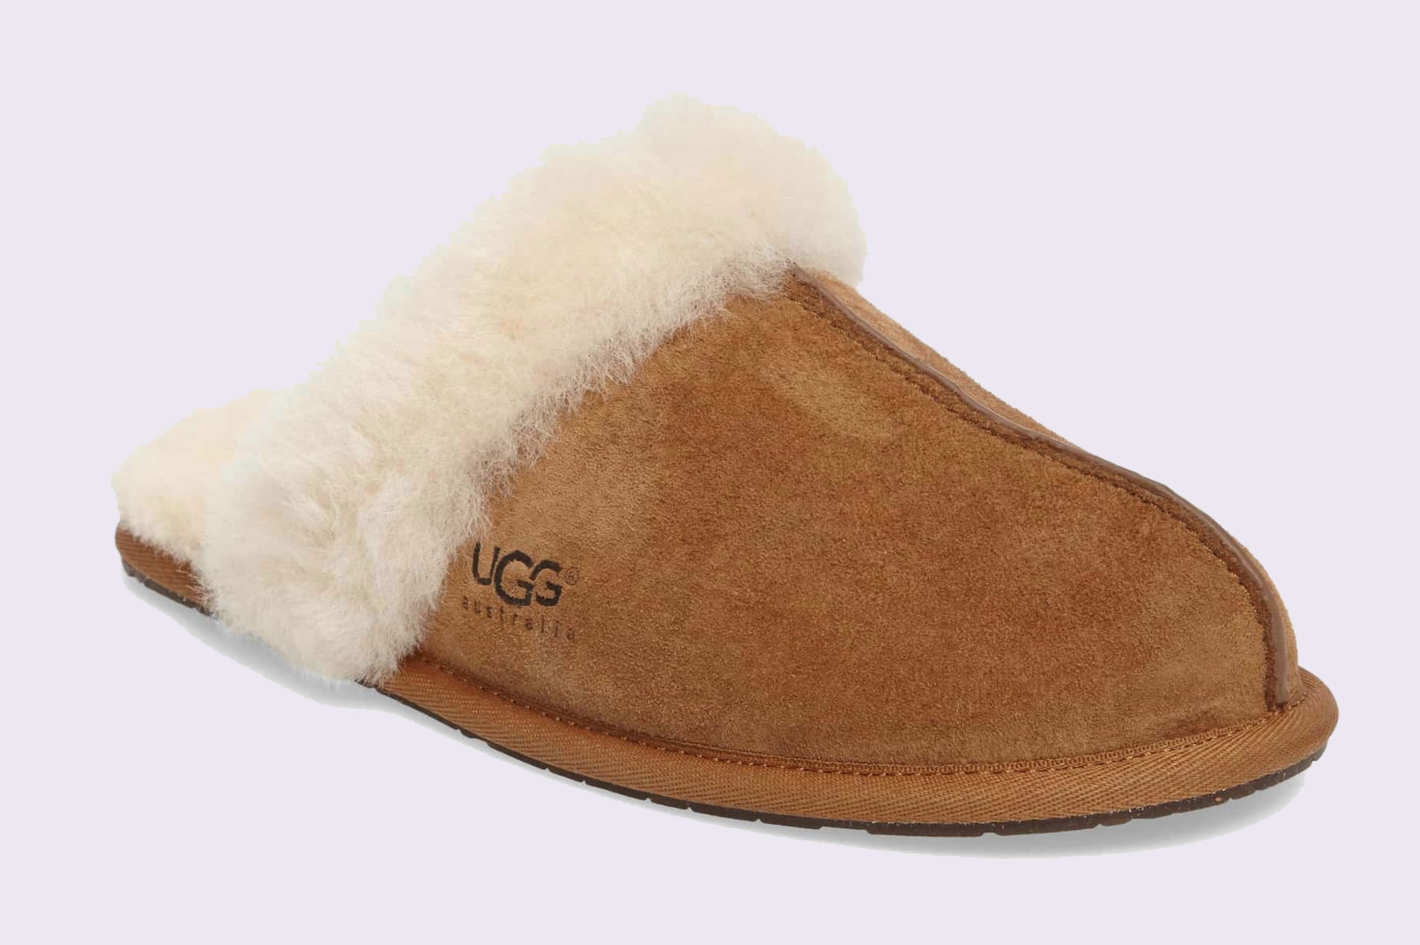 21 Best UGGs for Women Boots Slippers Slides 2017